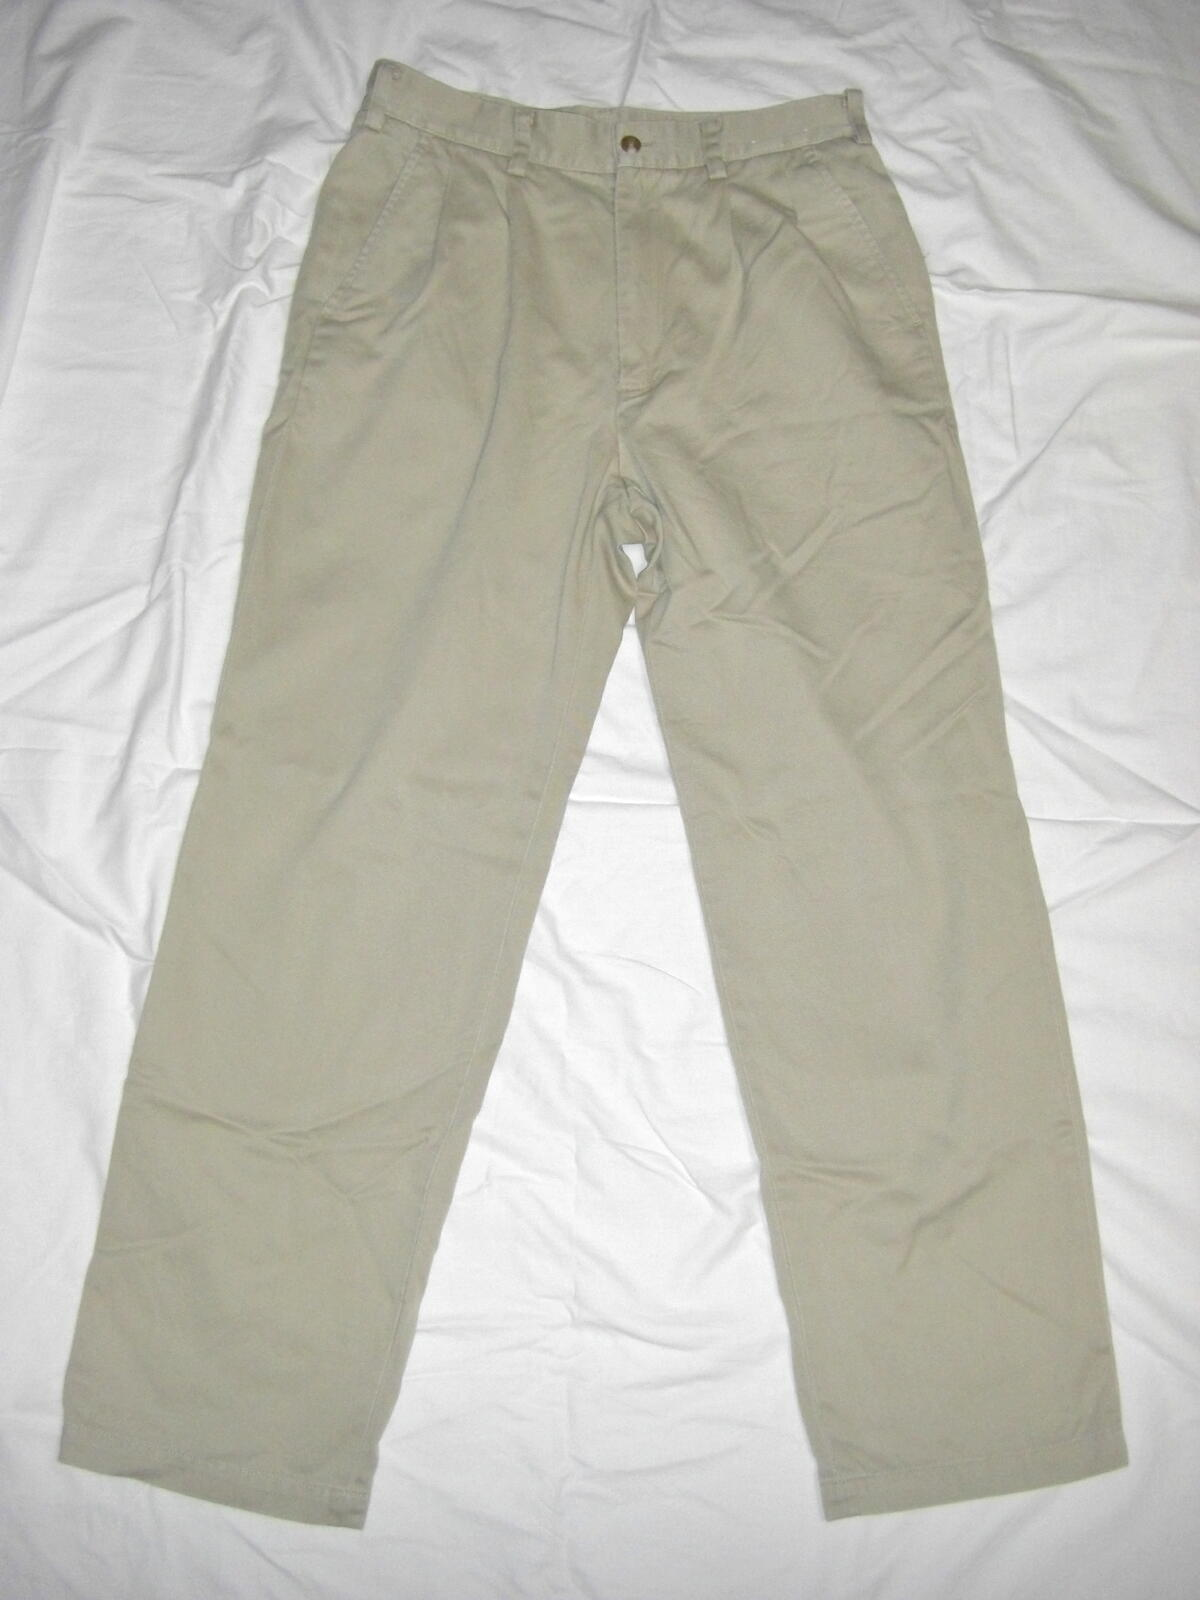 Product Features Flat-front chino pant with slanted front and rear welted pockets.